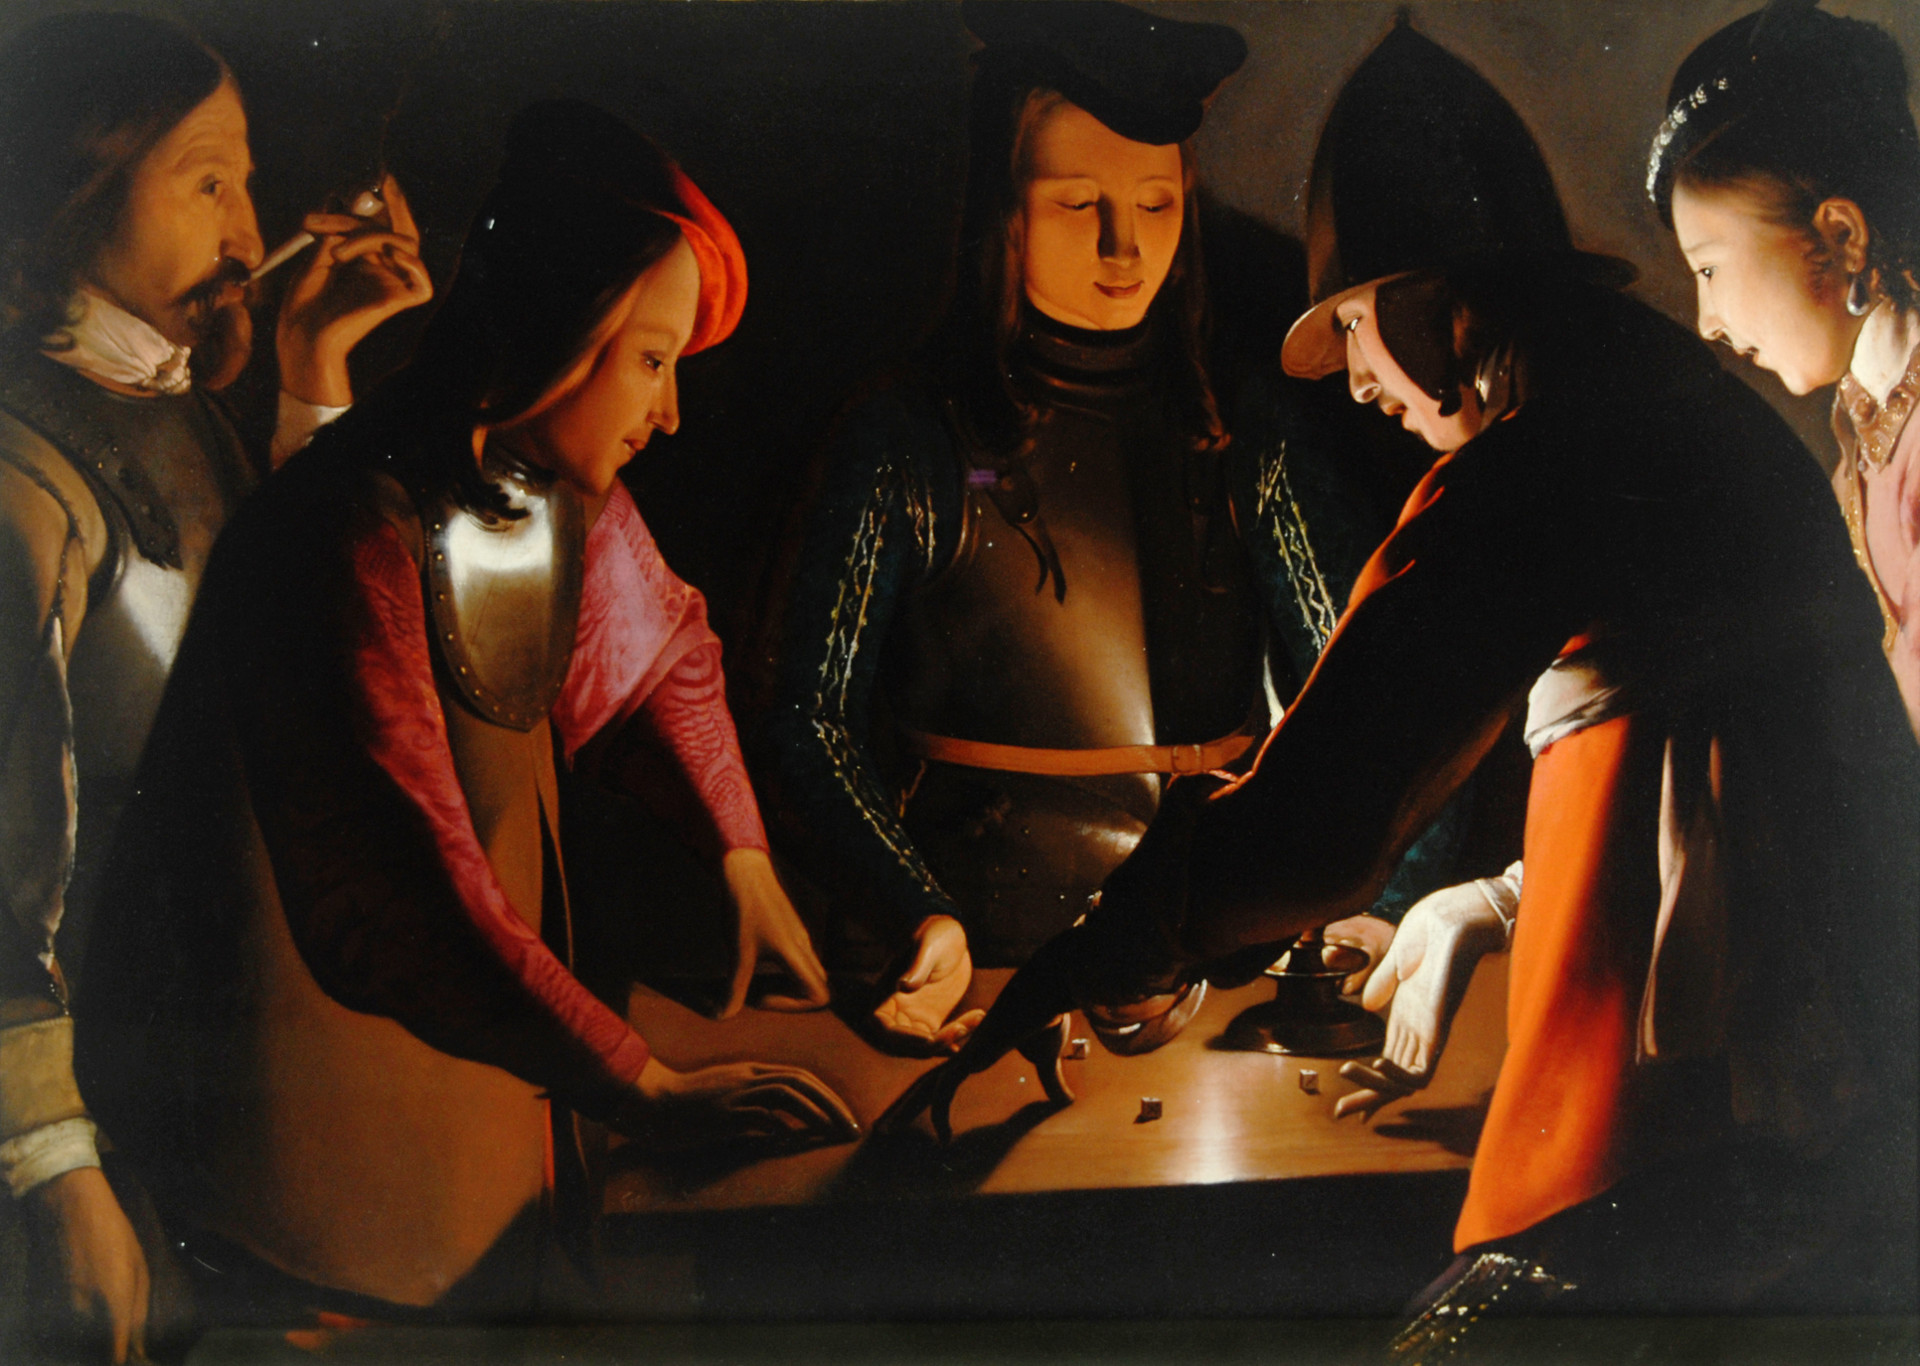 Georges de La Tour. I giocatori di dadi, 1650 - 1651, olio su tela 92.5 x 130.5 cm, Preston Park Museum and Grounds, Stockton-on-Tees, U.K.